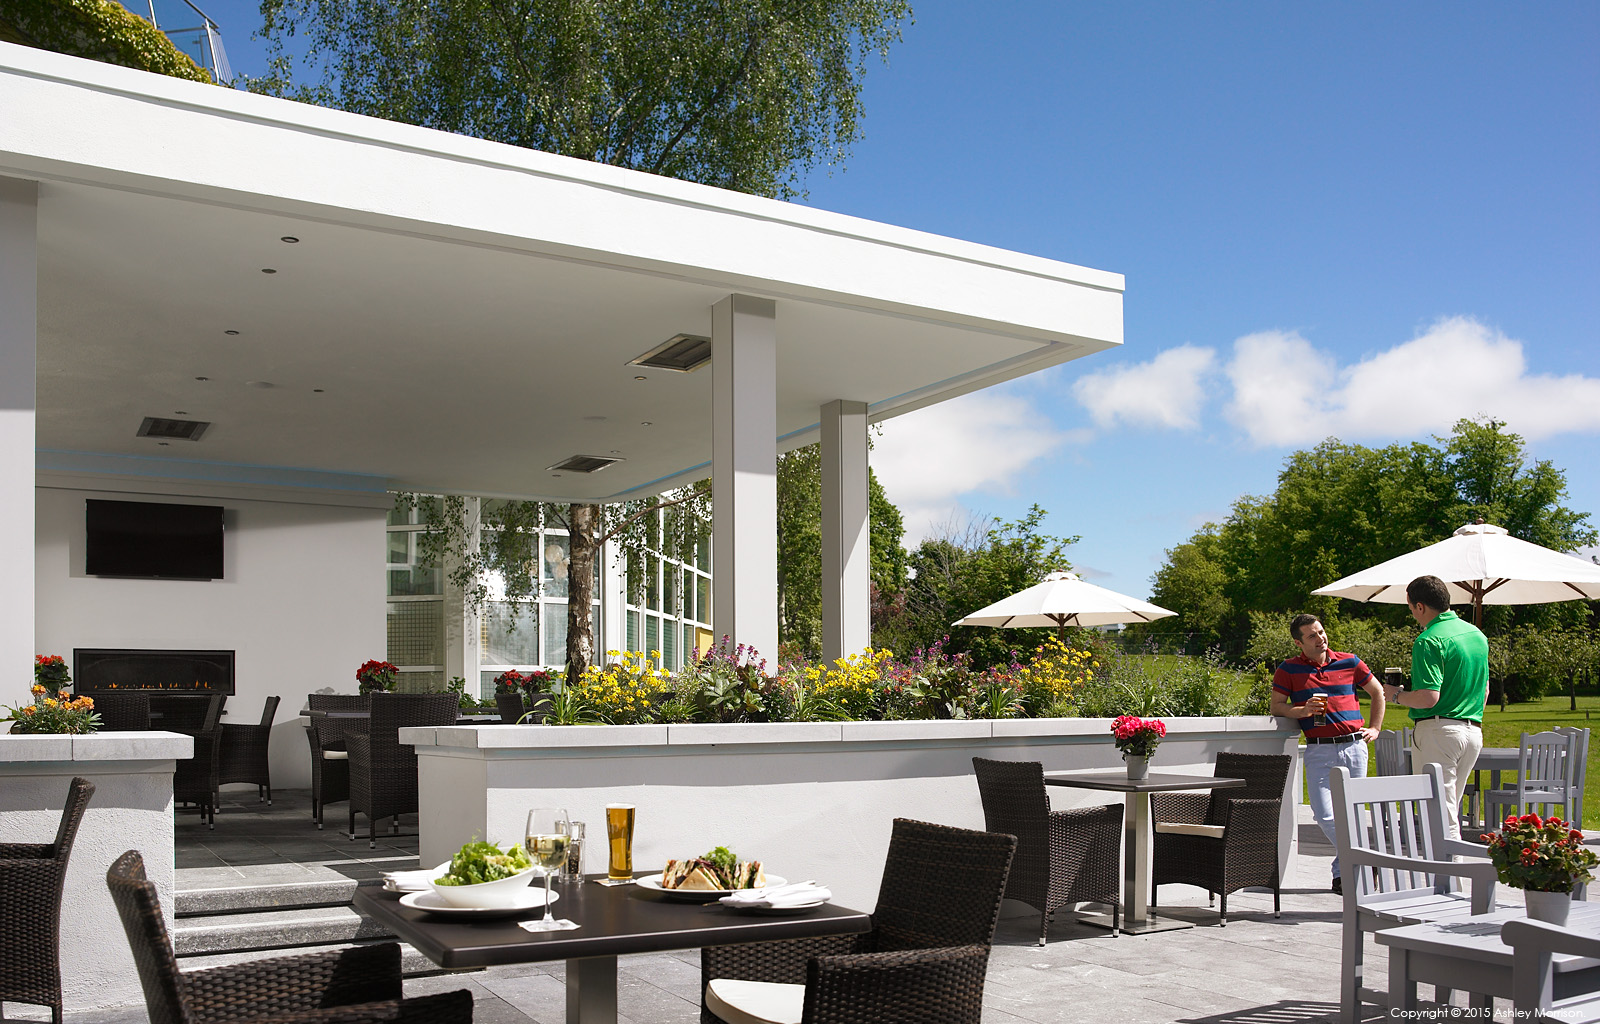 The Garden Terrace at the Killarney Park Hotel in the Irish county of Kerry.